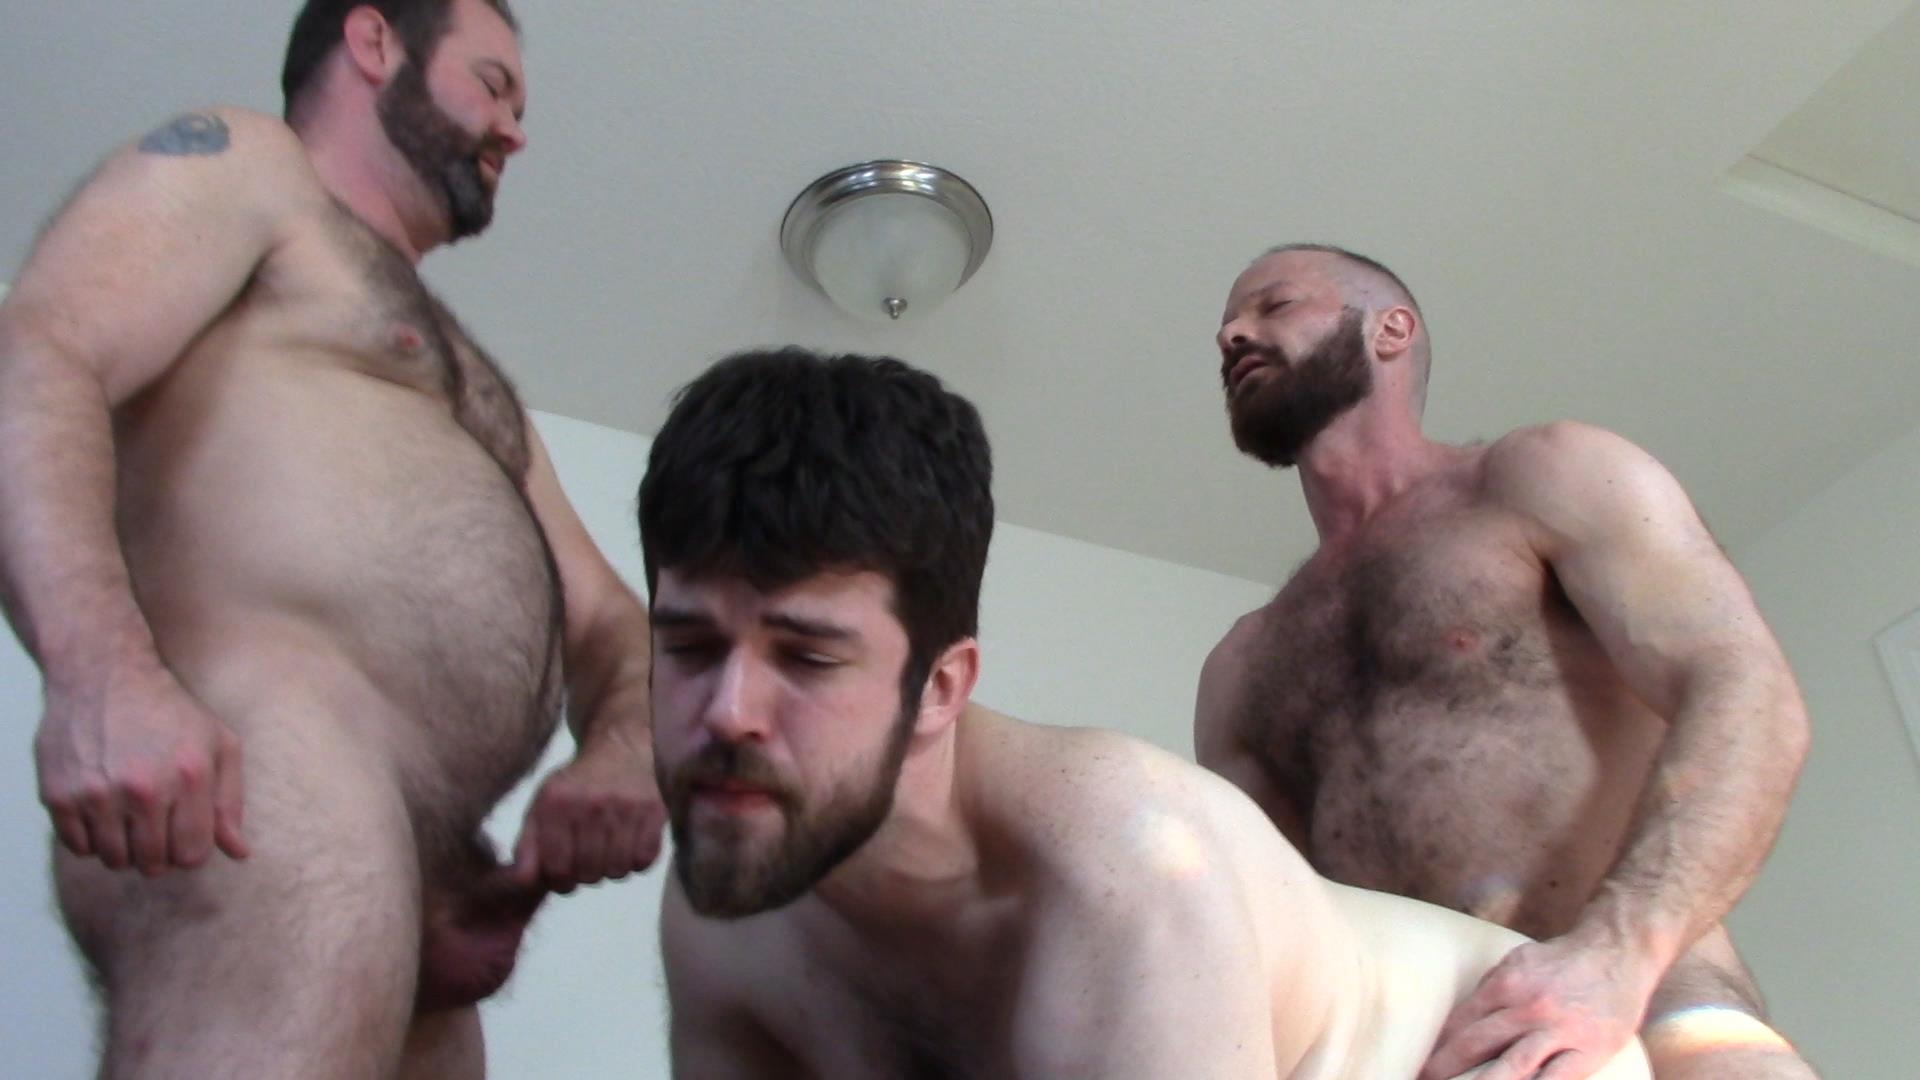 Topher-Phoenix-and-MuscleBul-and-David-Coyote-Daddies-Breeding-A-Chubby-Cub-18 Topher Phoenix and MuscleBull Take Turns Breeding Chubby Cub David Coyote